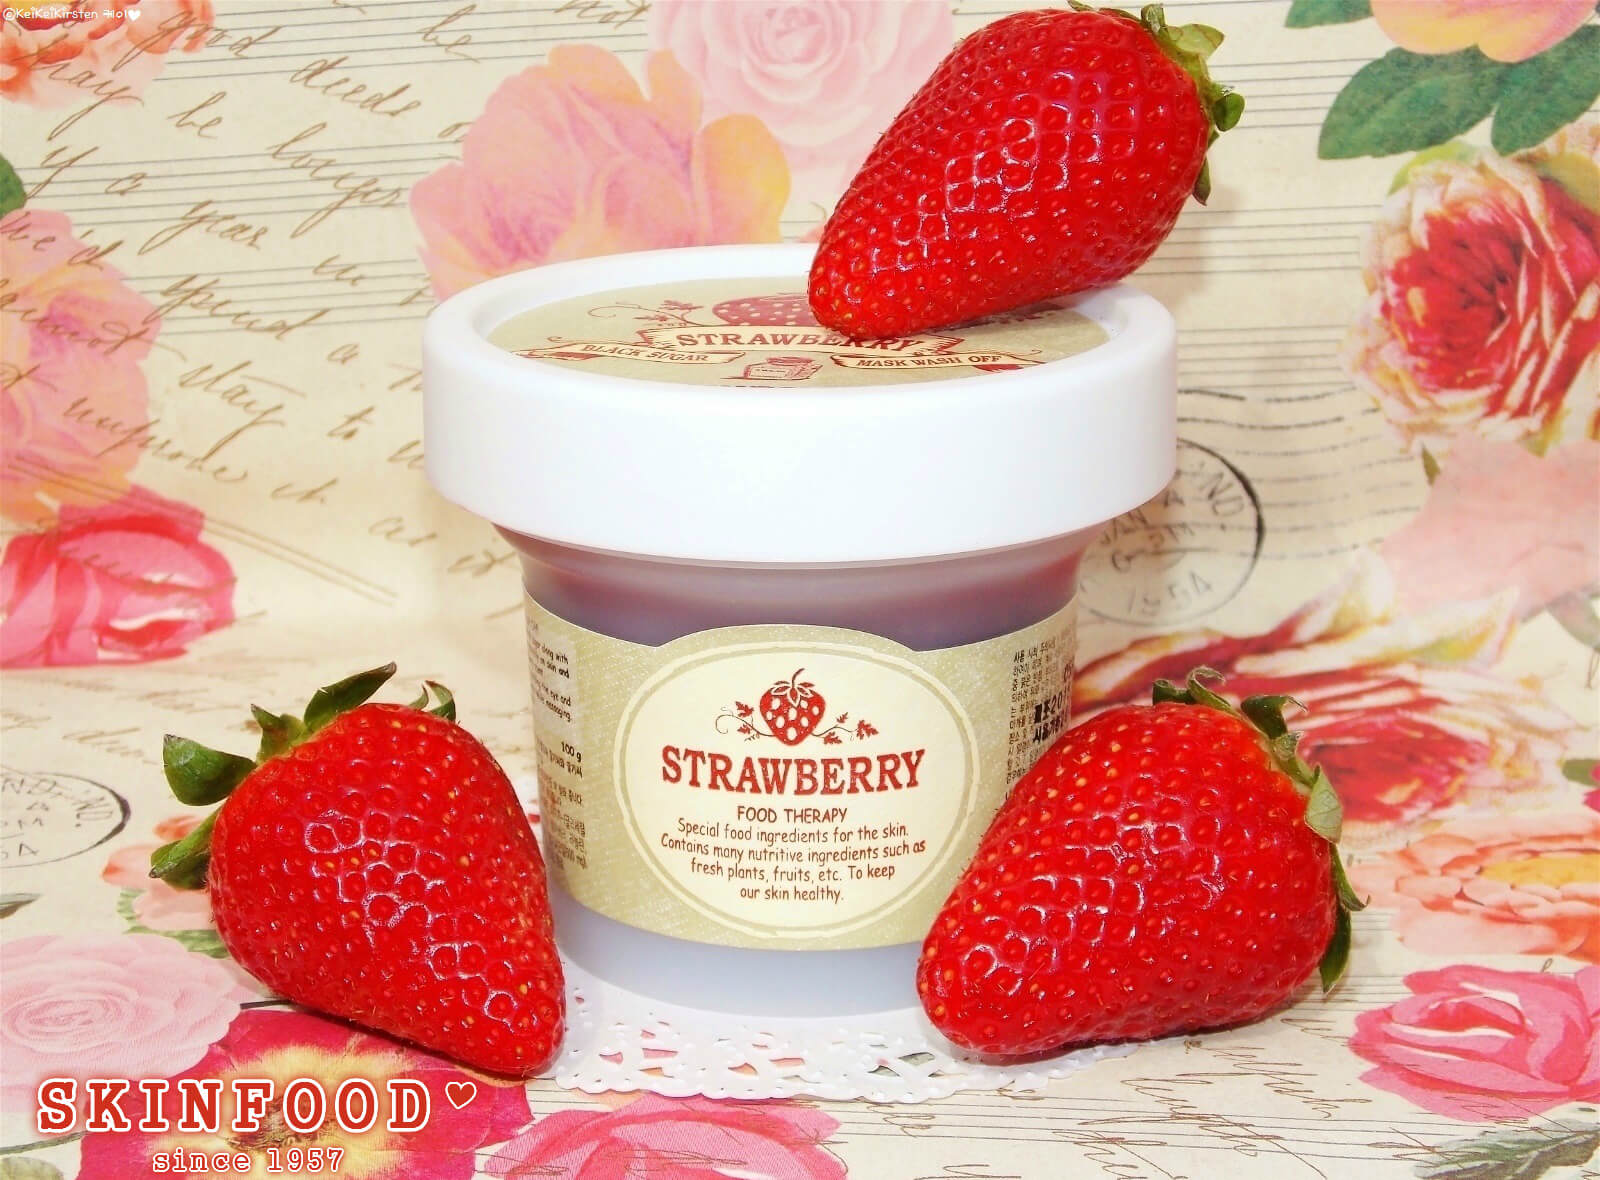 mat-na-tay-te-bao-chet-skinfood-black-sugar-strawberry-mask-wash-off-05